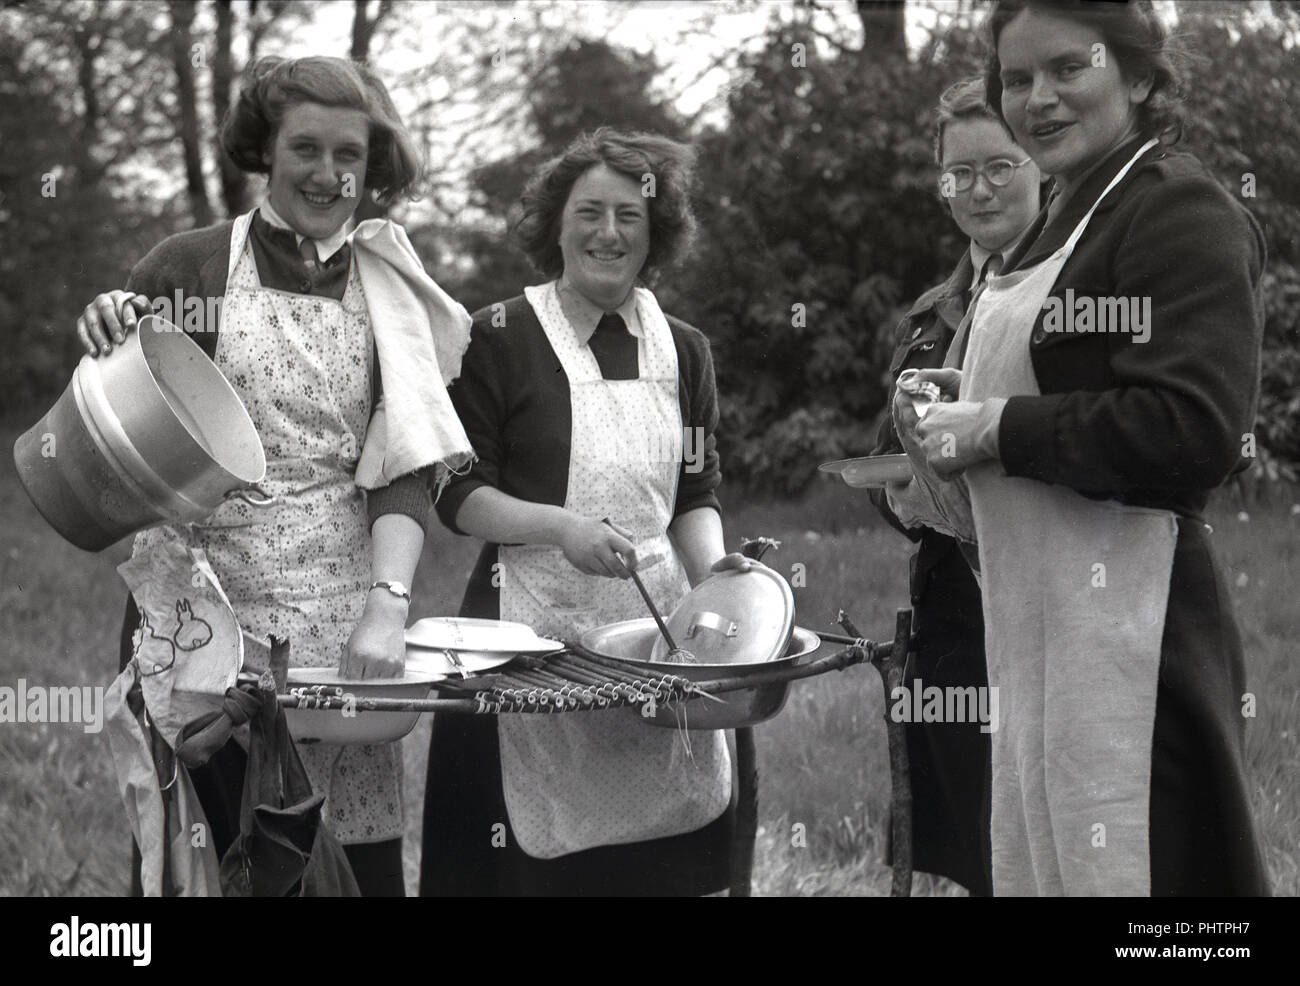 1950s, female adult girl guide leaders or Brown Owls in their aprons doing the washing up on a make-shift top made from sticks, outside at summer camp, England, UK. - Stock Image